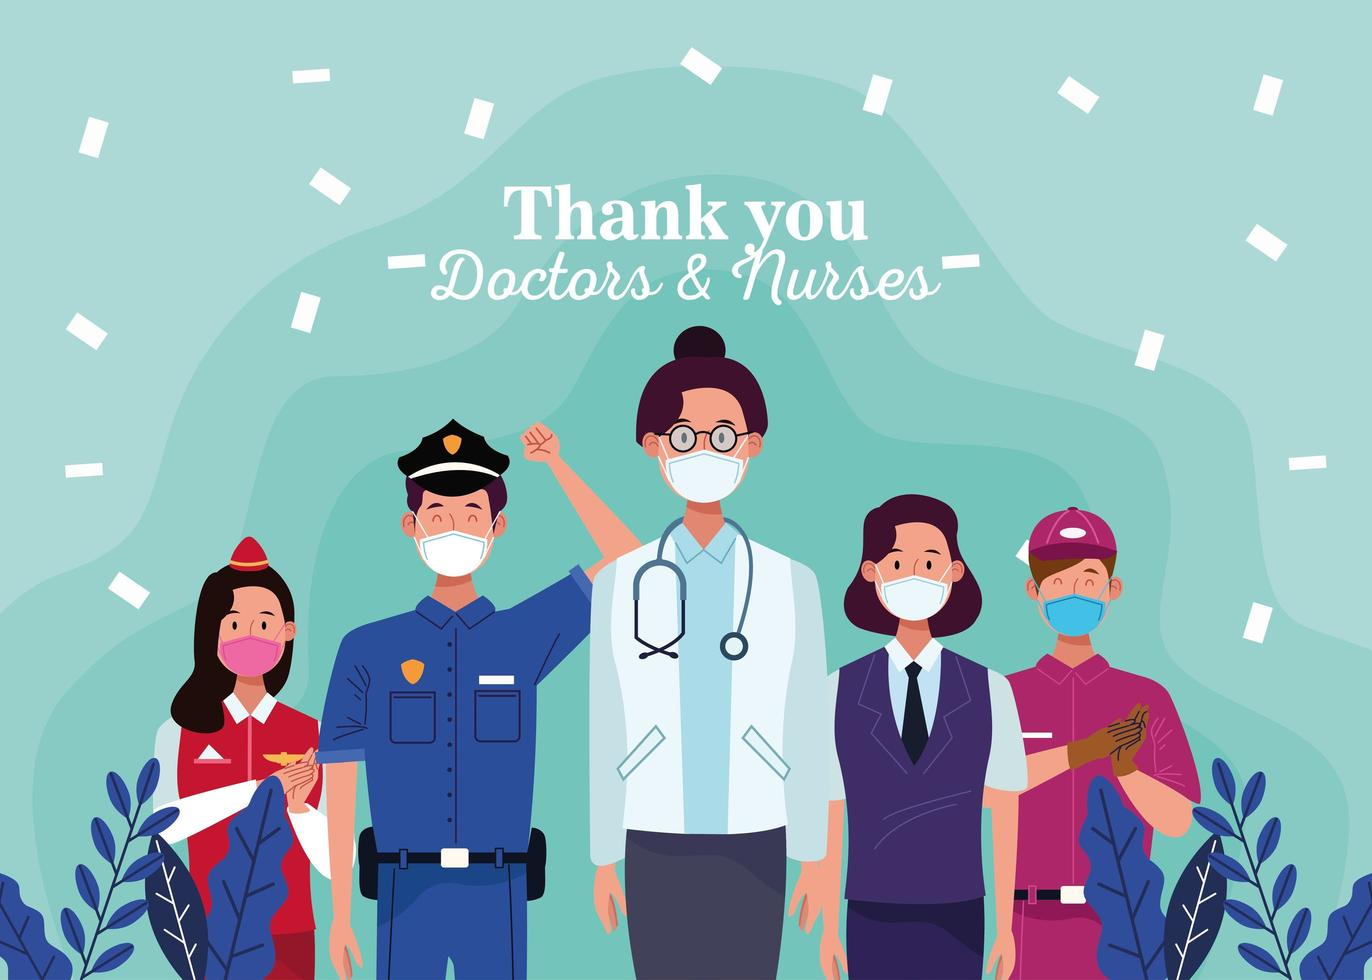 Workers using medical masks with thank you doctors and nurses message vector